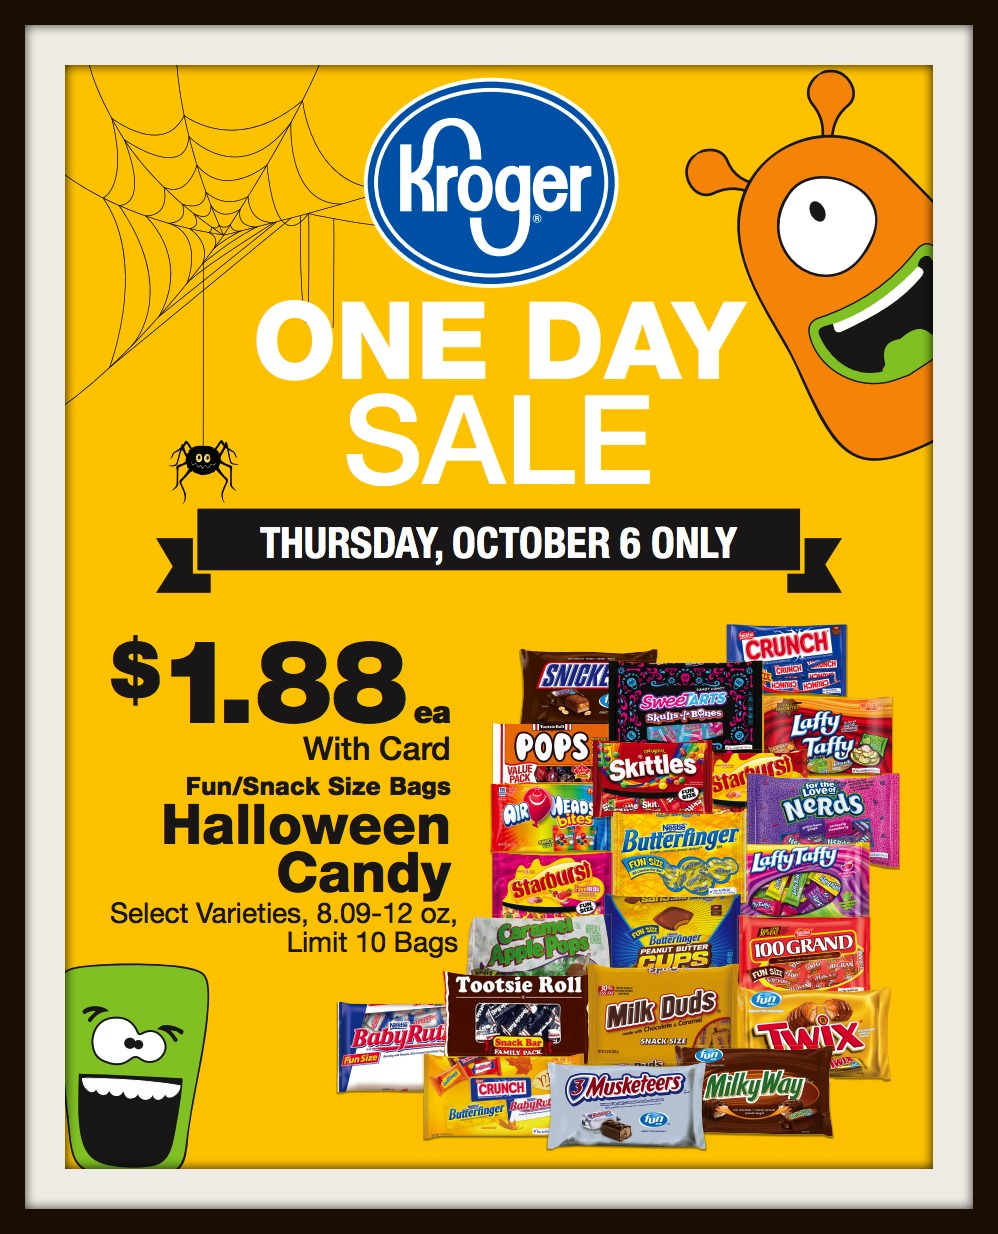 one day $1.88 halloween candy sale = october 6th at kroger